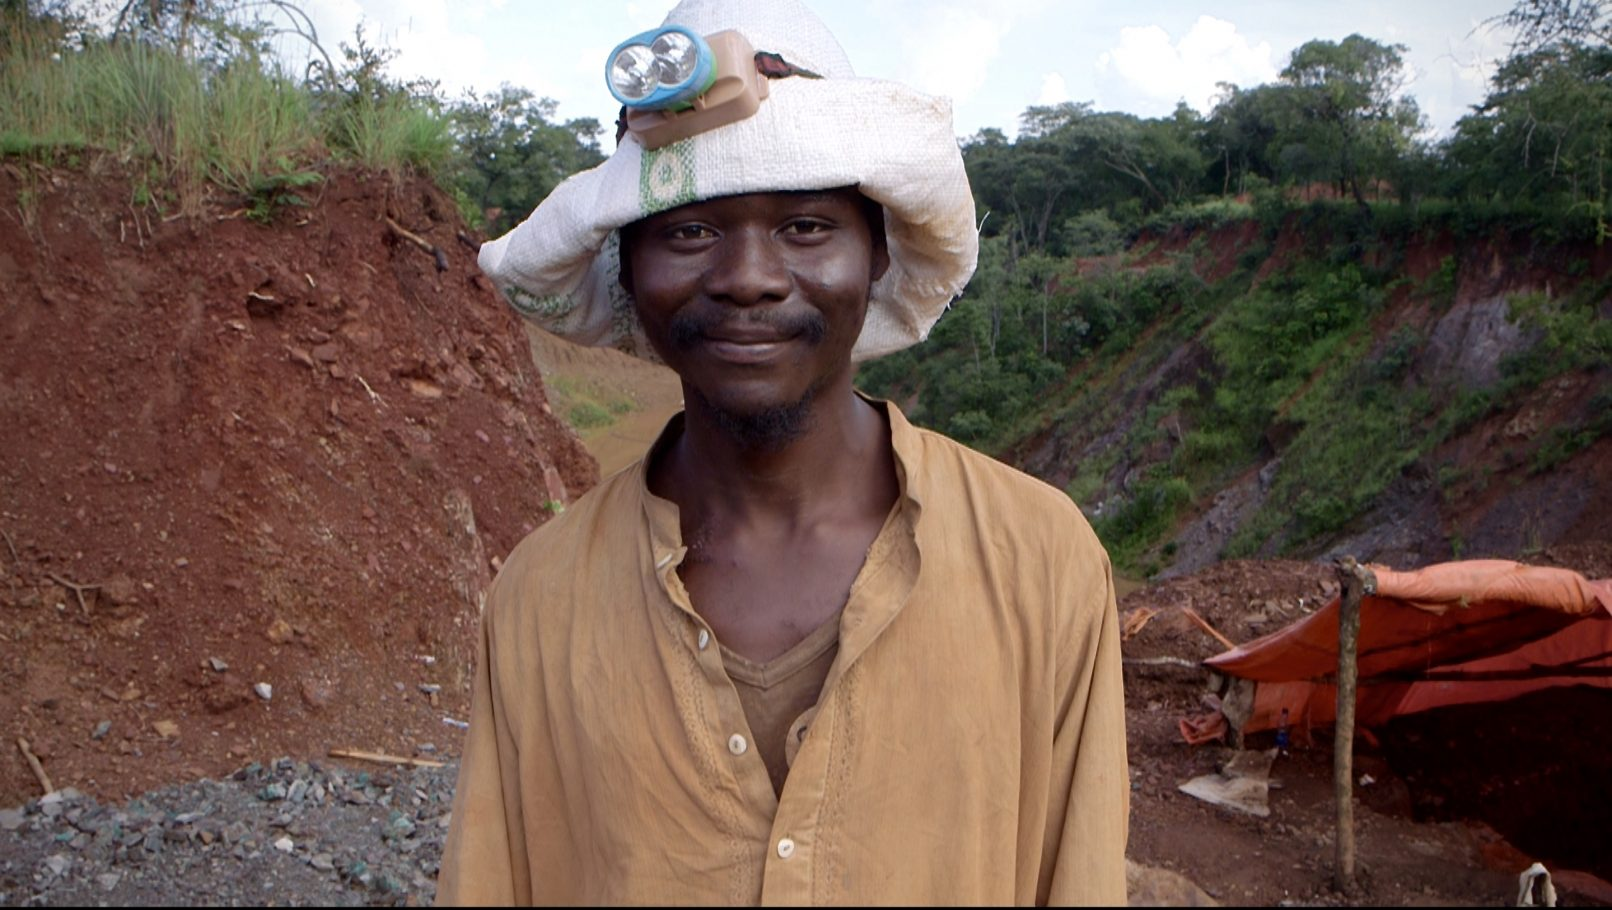 Trésor, a 24 year old artisanal mining from Katanga risk his life to extract copper 25 meters underground...